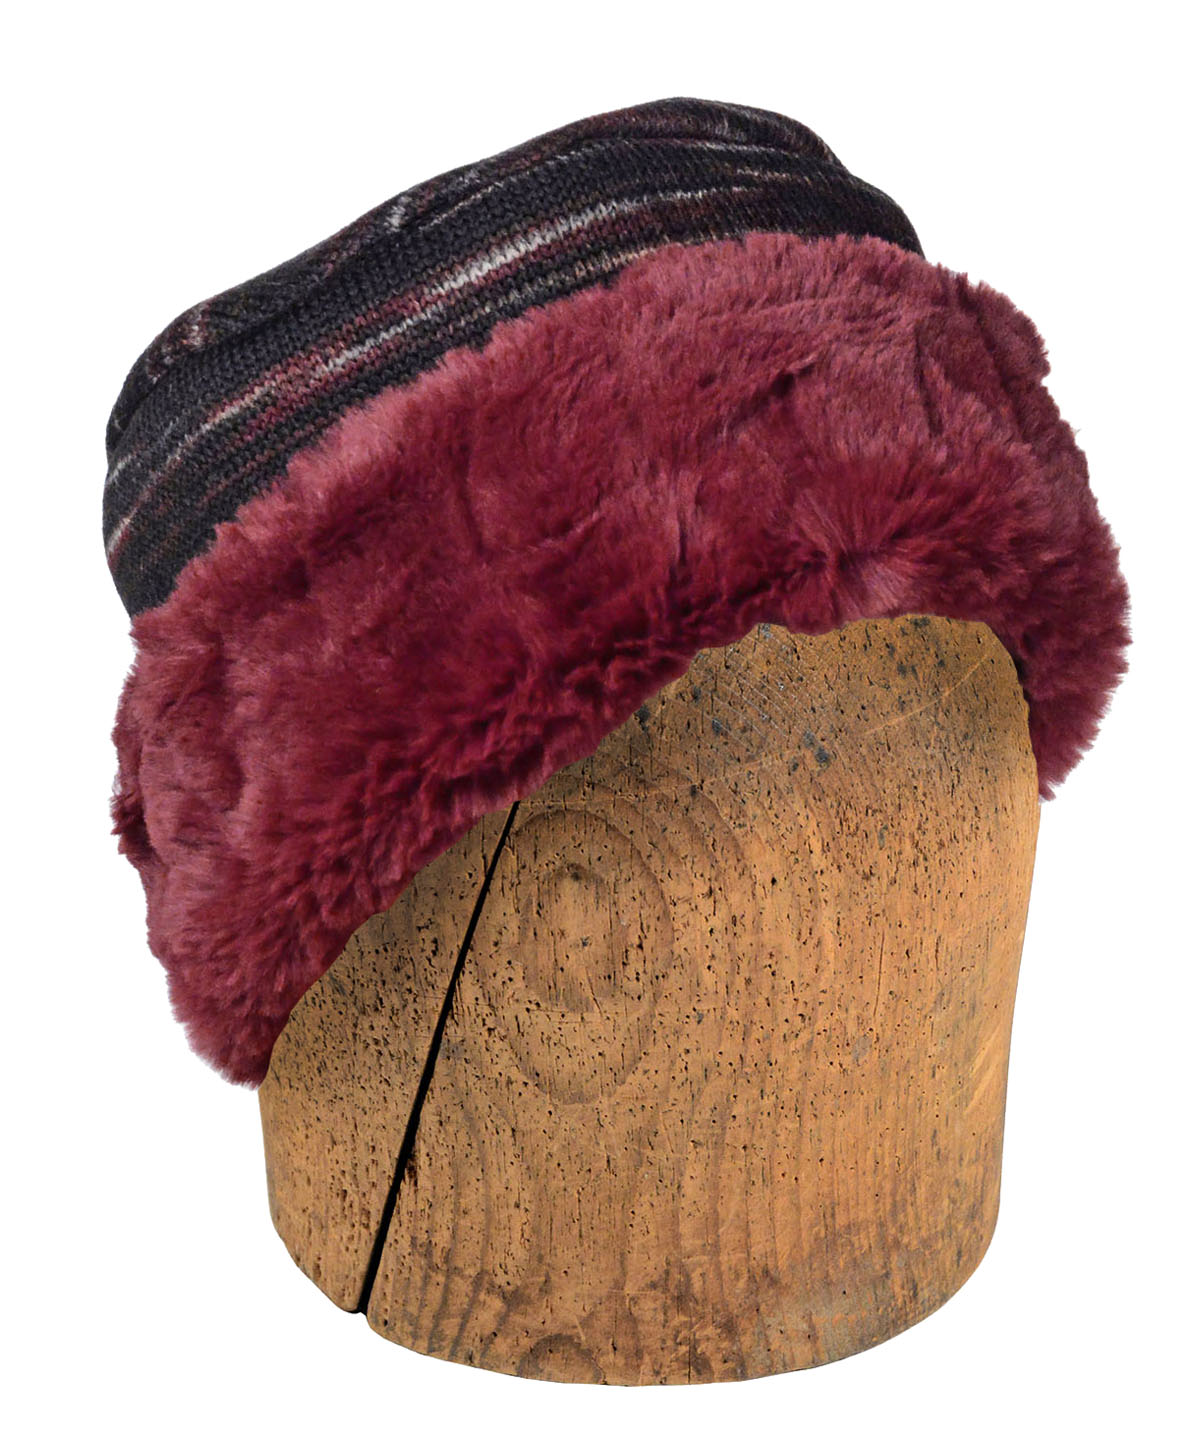 Men's Cuffed Pillbox, Reversible (Two-Tone) - Sweet Stripes in Cherry Cordial with Assorted Faux Fur